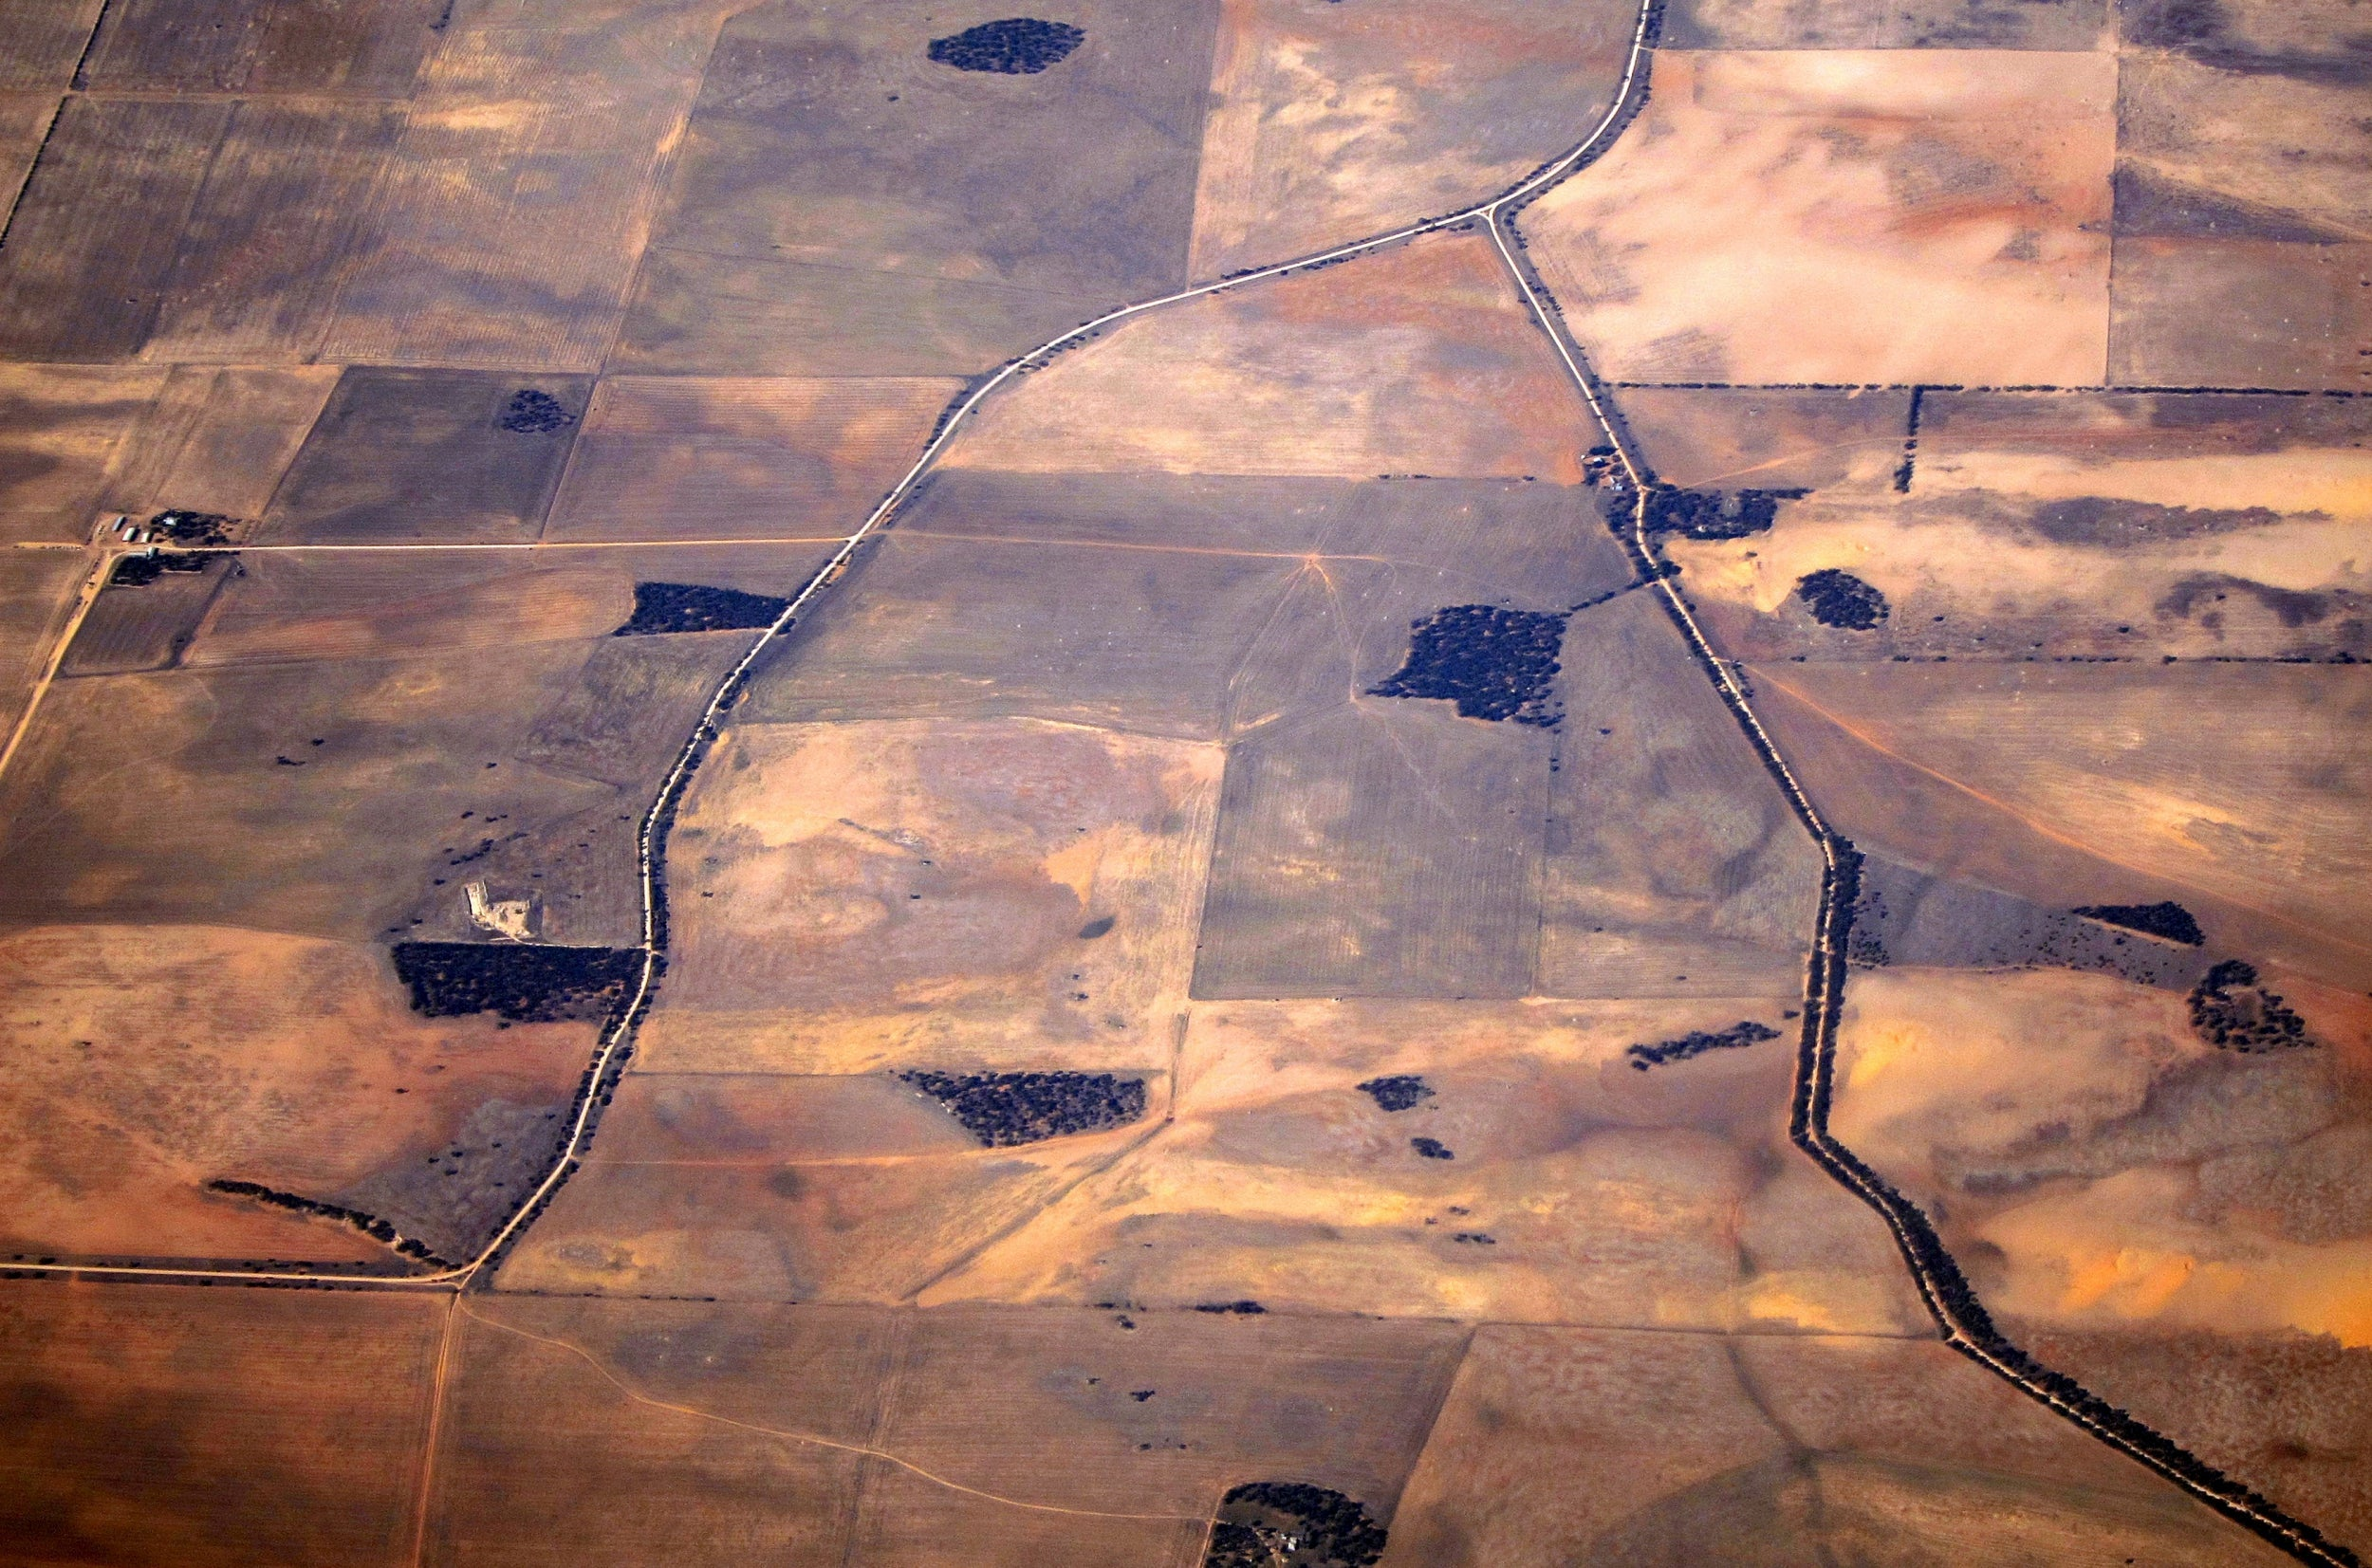 At least 25,000 litres of drinking water stolen amid Australia drought